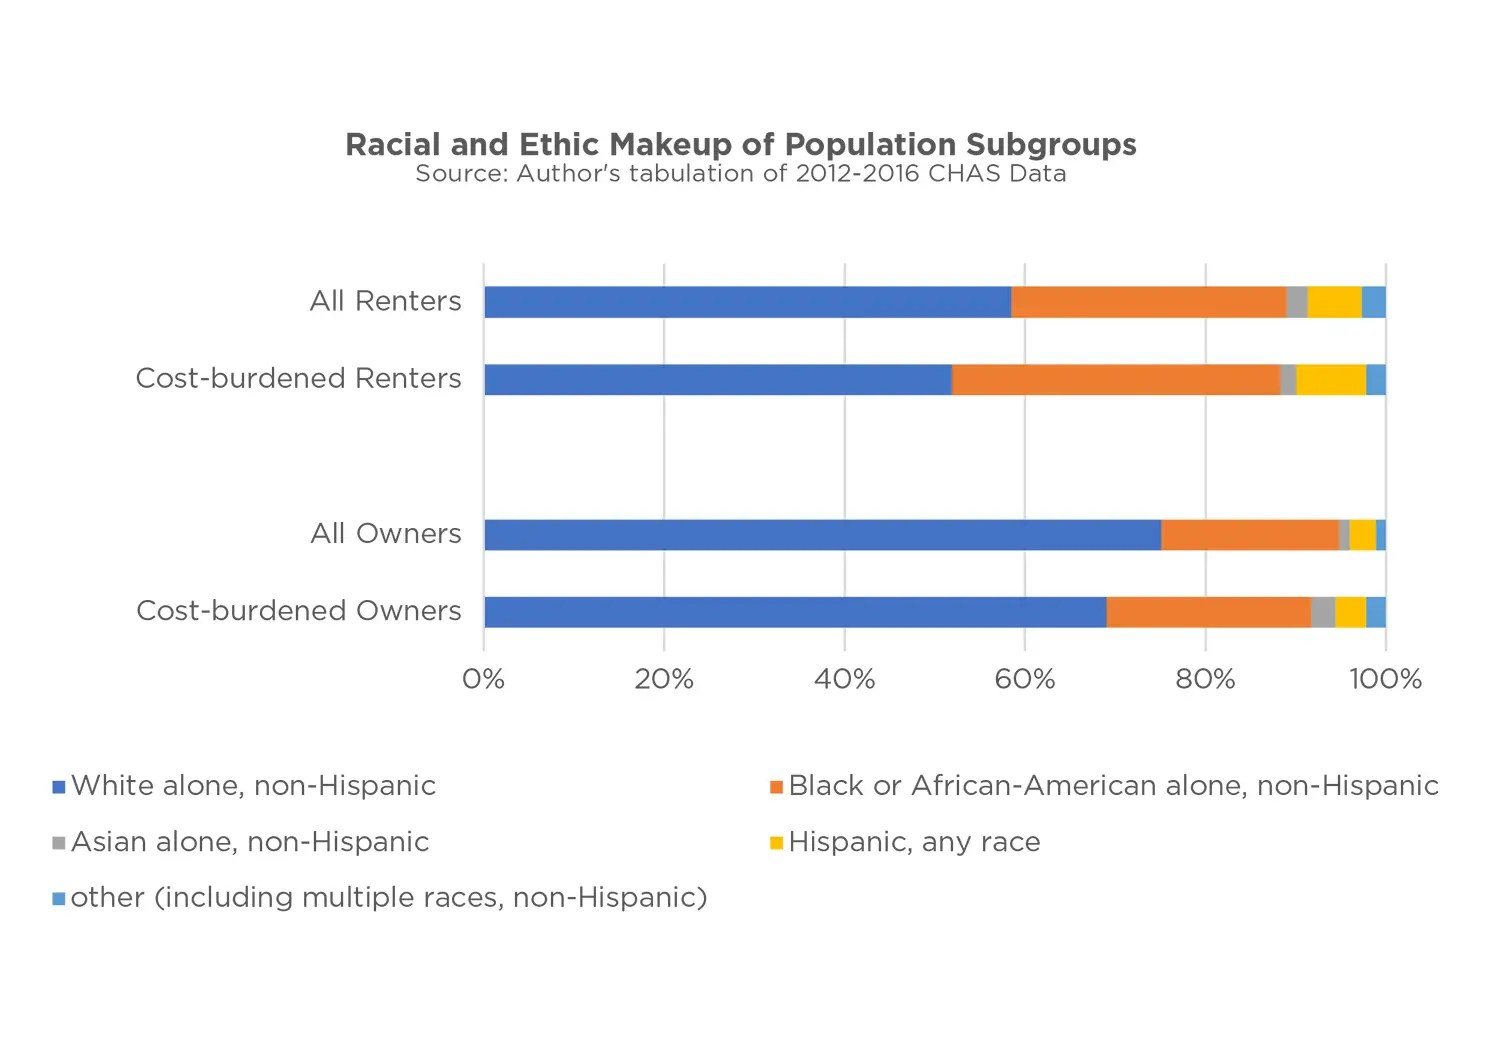 Graph showing Racial and Ethic Makeup of Population Subgroups